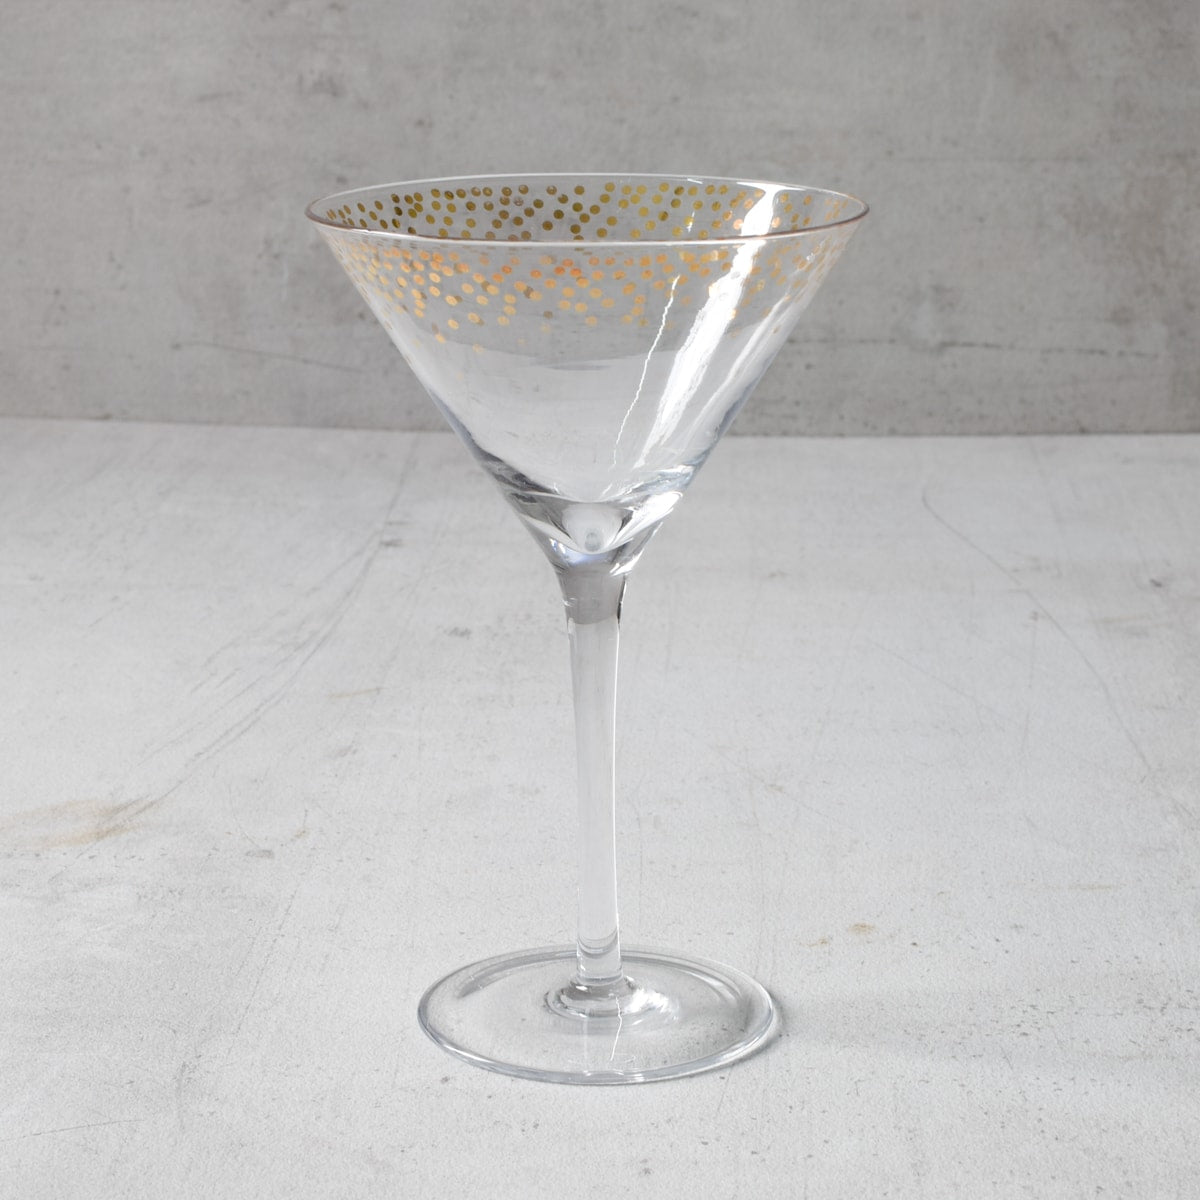 Waterford Polka Dot Cocktail Glass (Set of 2)